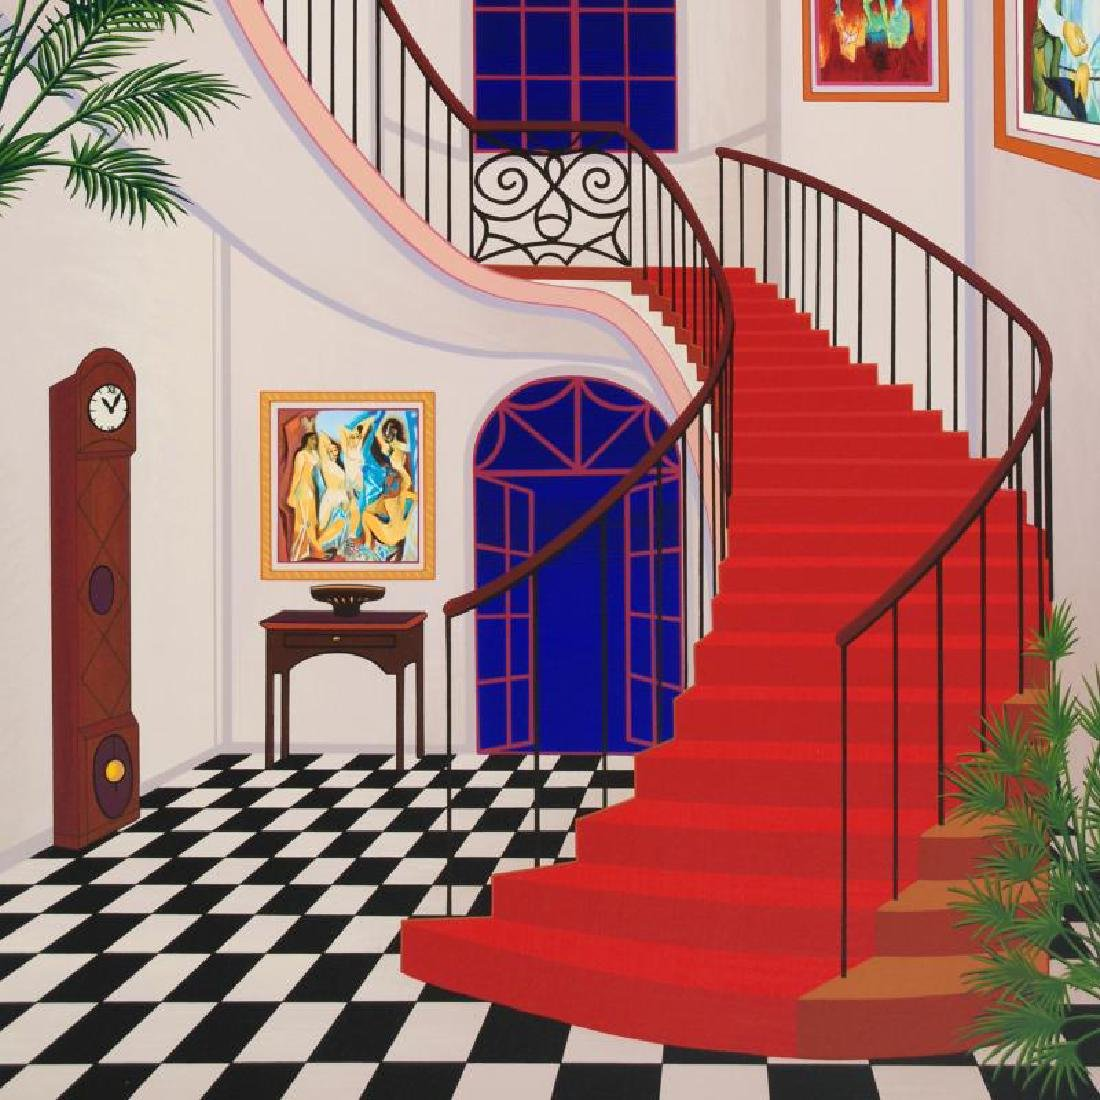 Interior With Red Staircase by Ledan, Fanch - 2